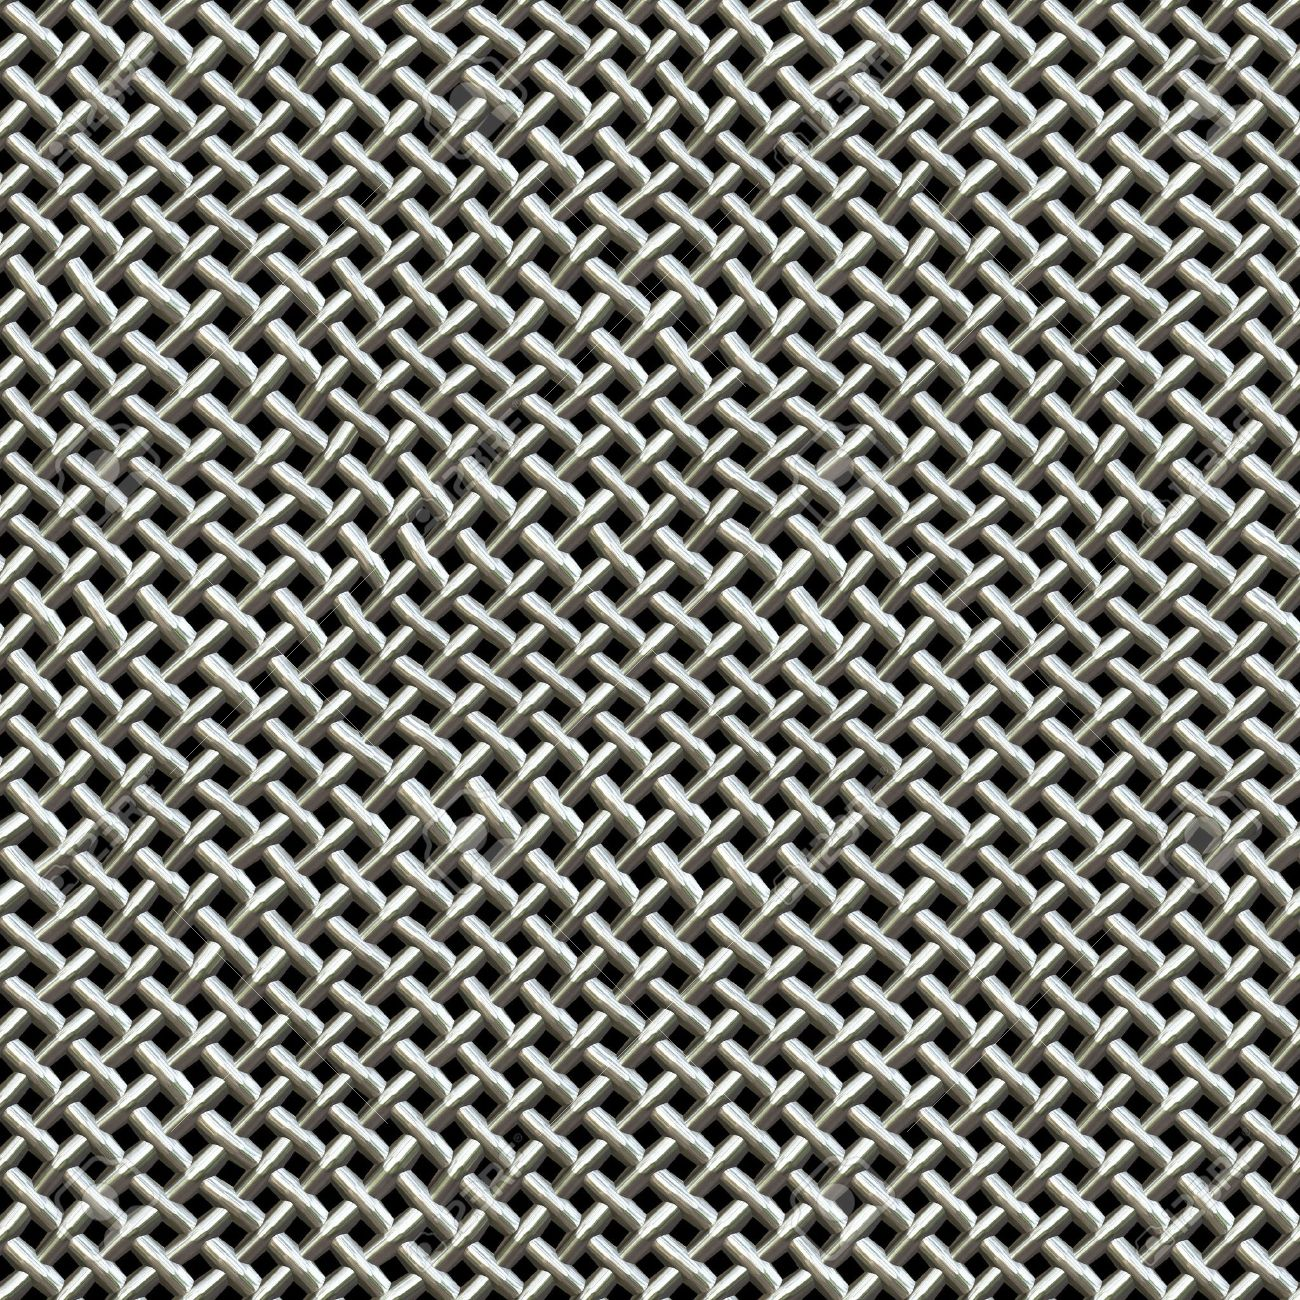 A Silver Metal Wire Mesh Texture Found On Microphones. This.. Stock ...